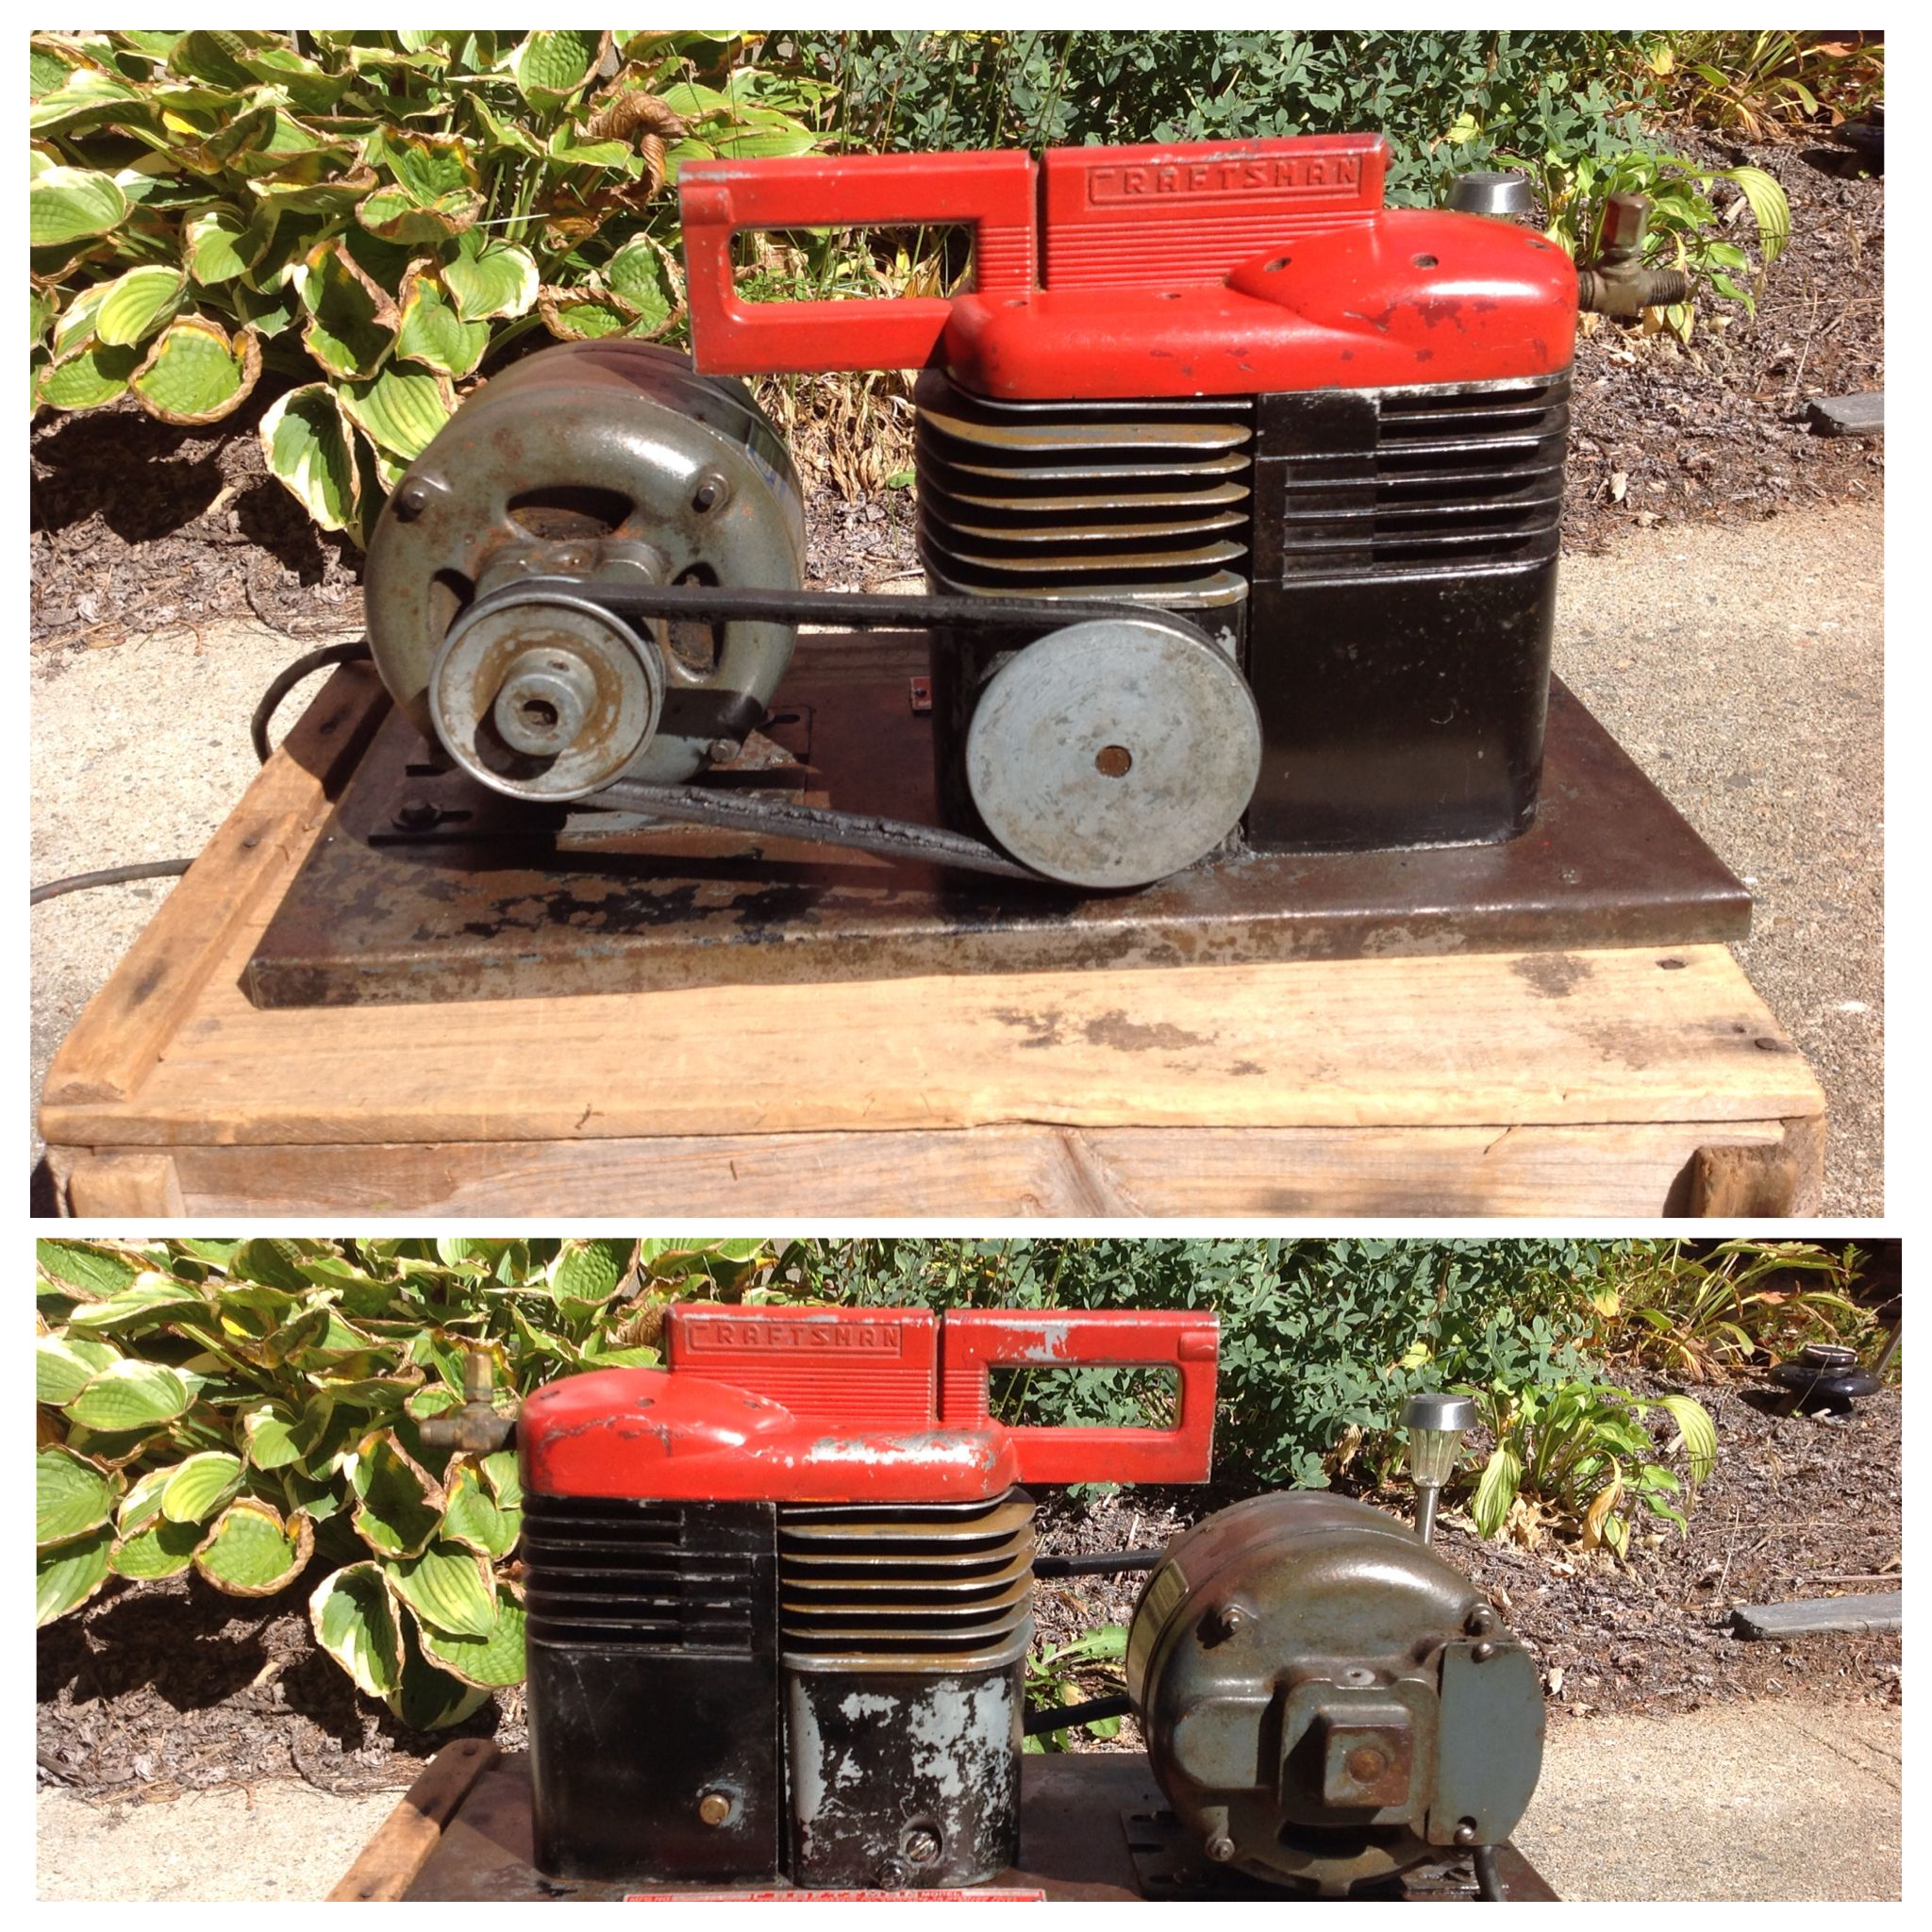 1940's deco style craftsman air compressor. A neat